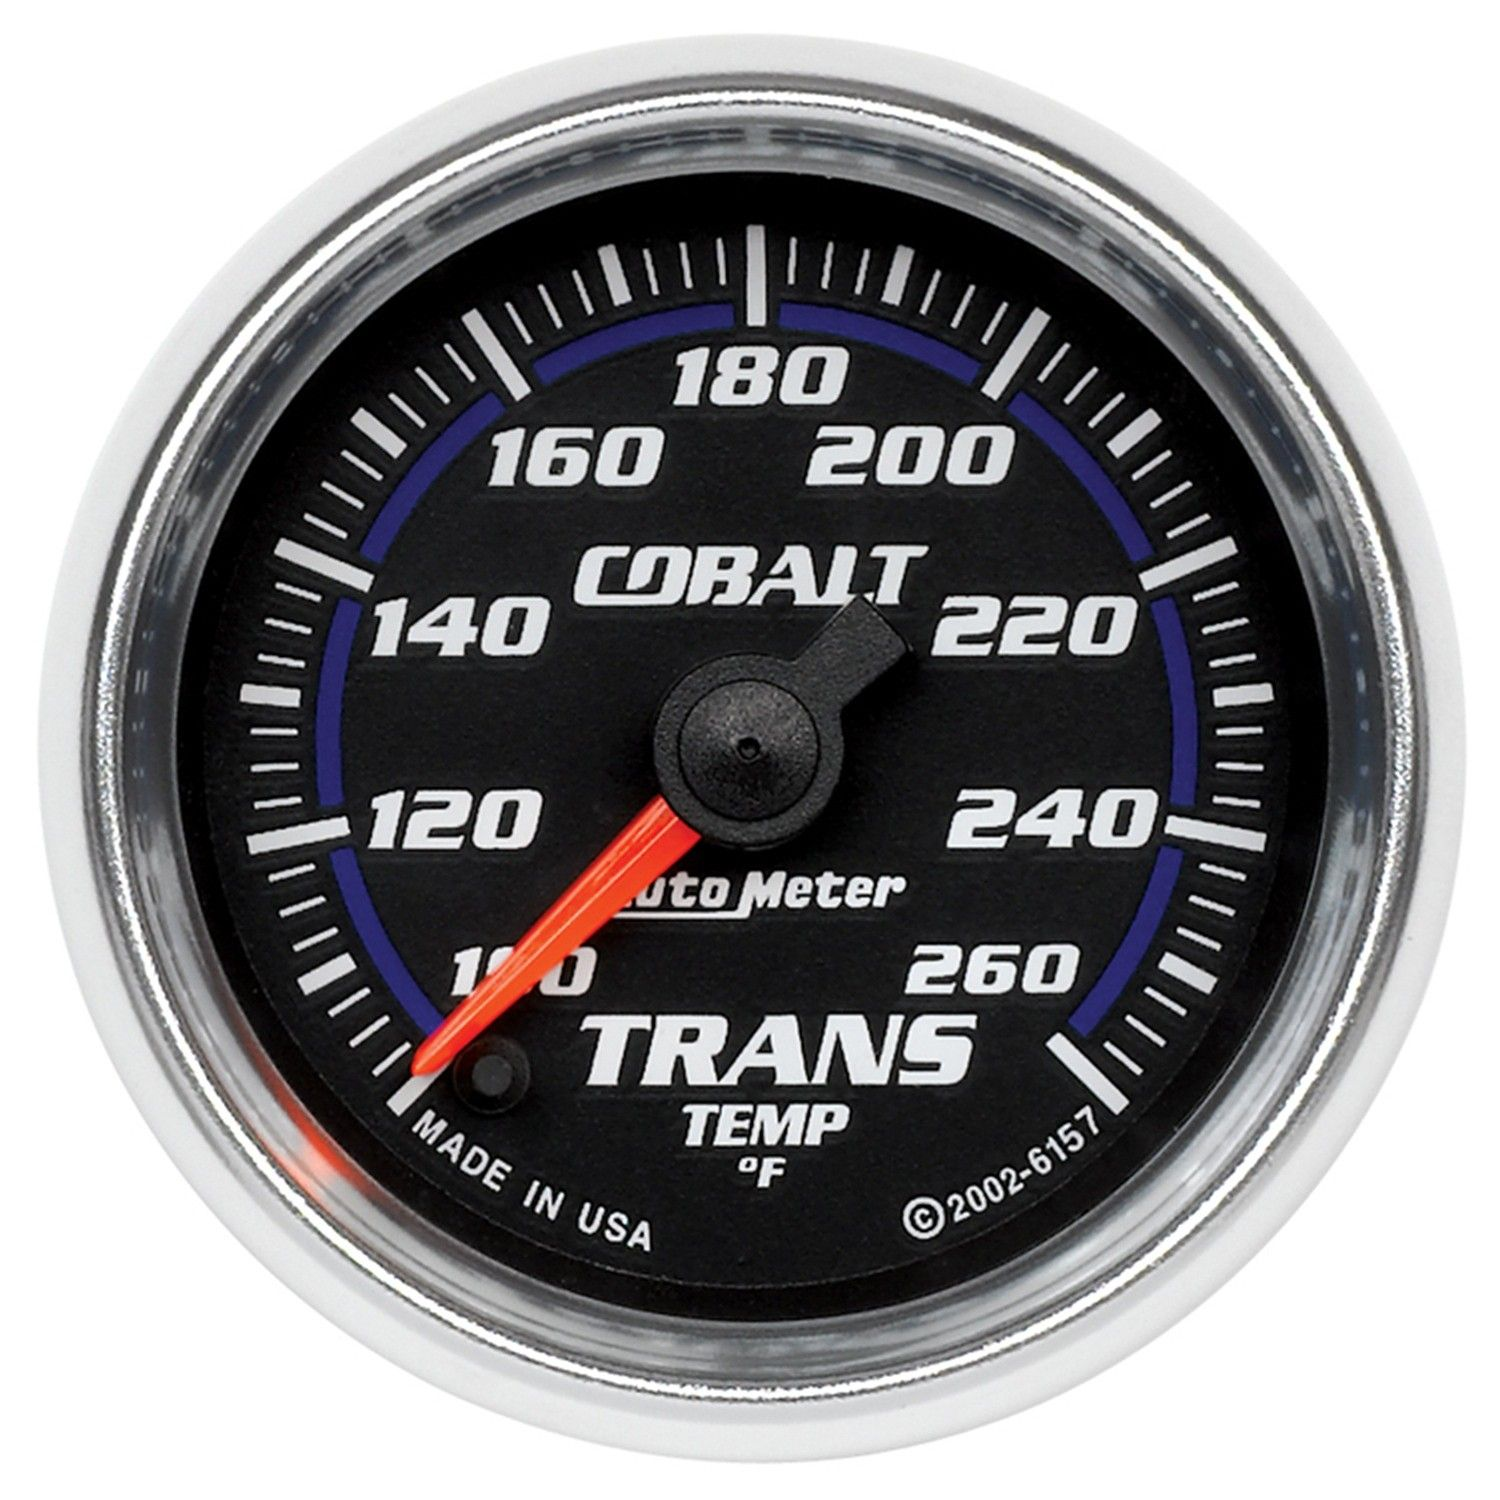 small resolution of 2 trans temp 100 260 f fse cobalt gauges cobalt